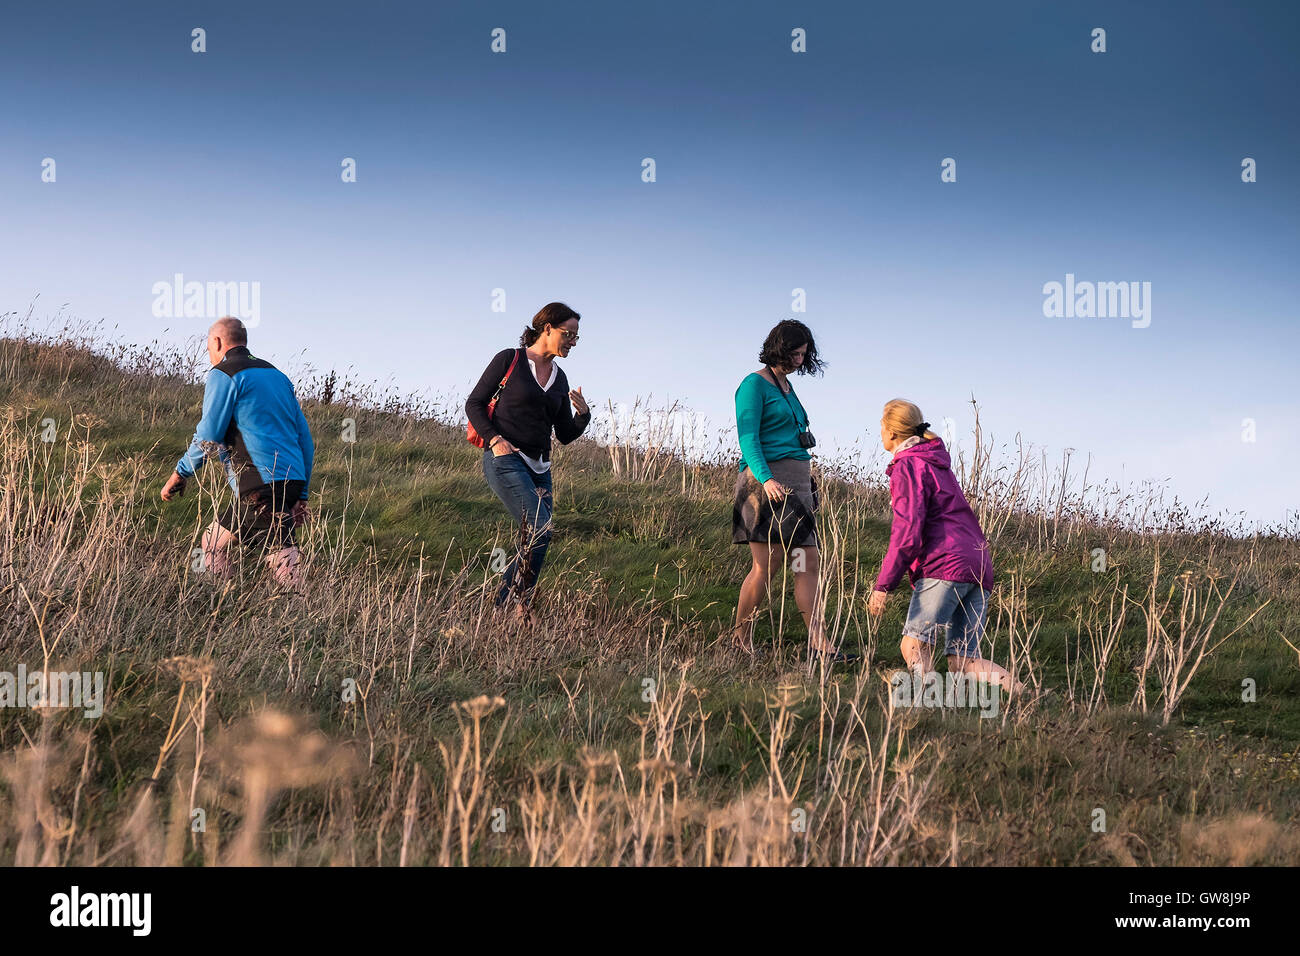 People walking up and down a hill on Towan Head in Newquay, Cornwell. - Stock Image